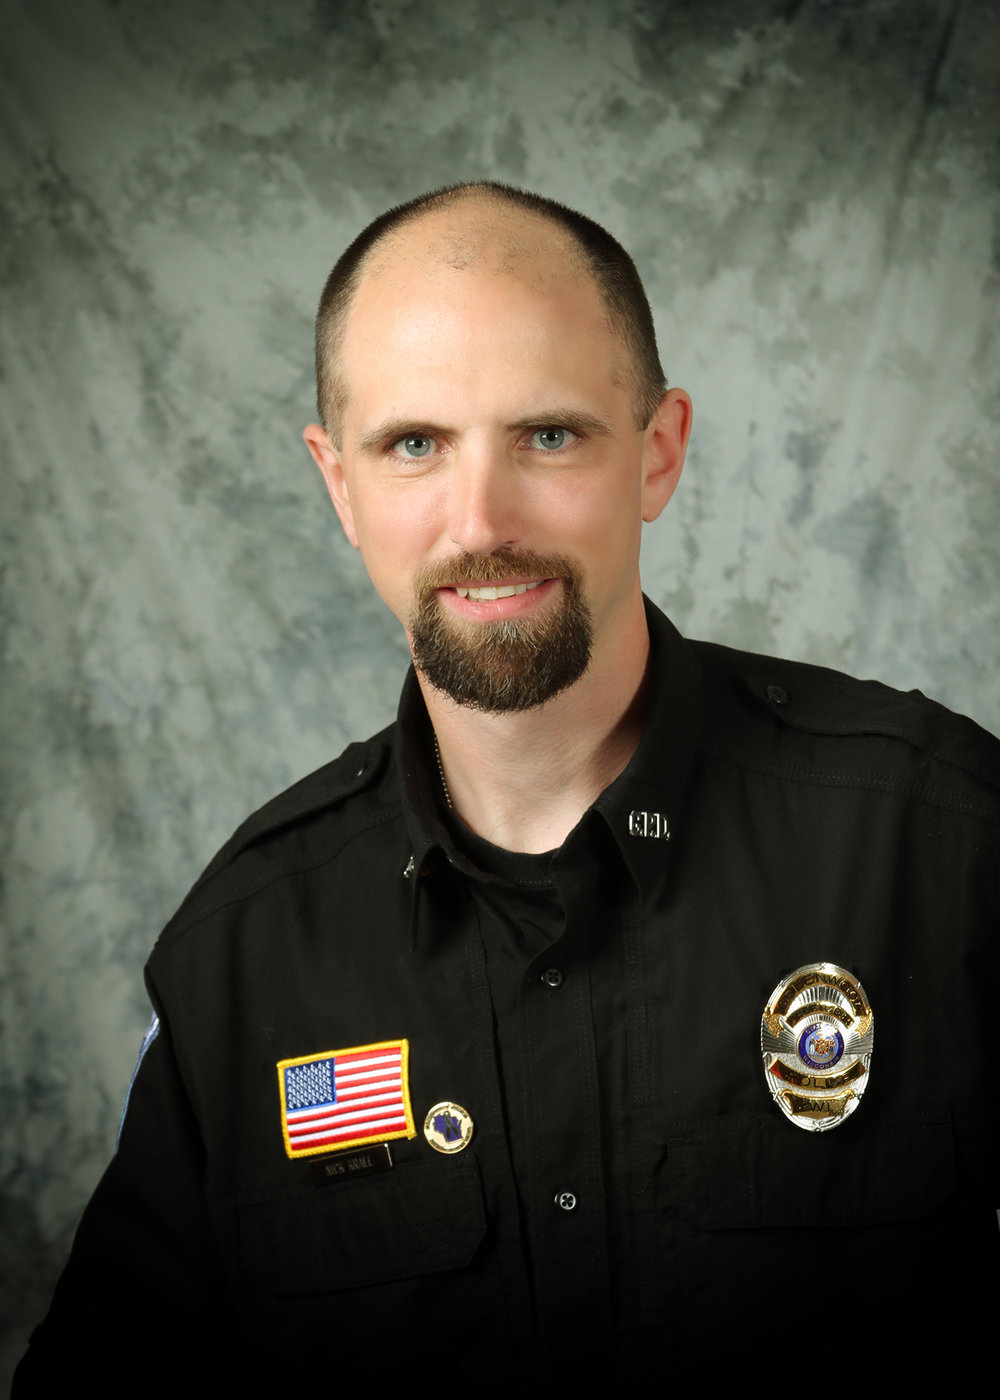 Nicolas Krall - Police Officer                         (715)267-6215                nkrall@greenwoodwi.com